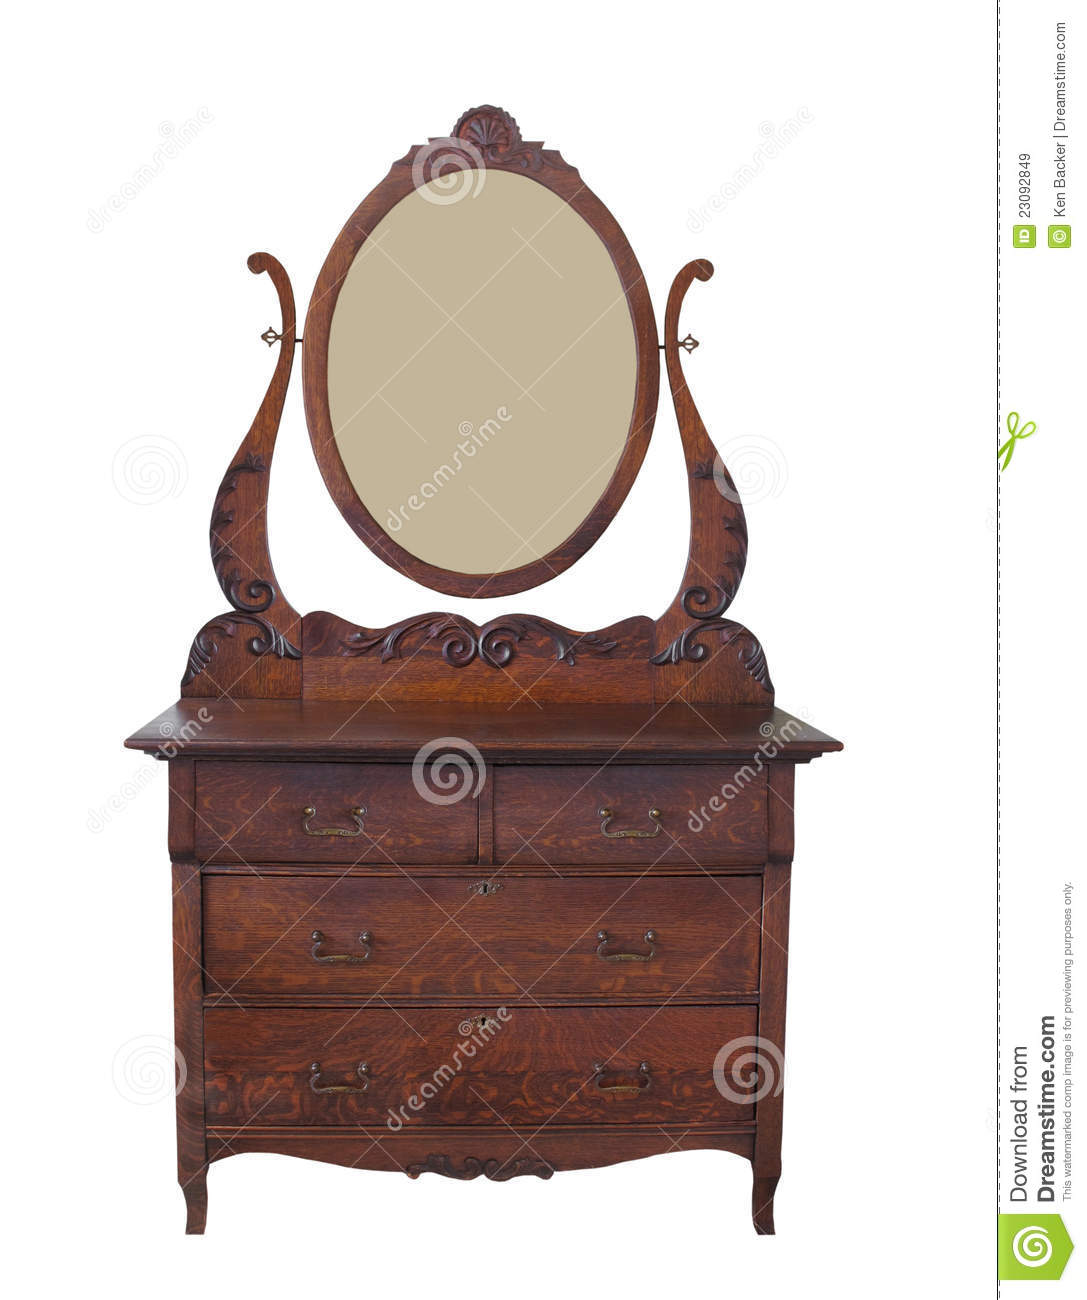 Ikea Furniture Building Services as well Walmart Bedroom Furniture Vanity together with Wainscoting Inspiration Or Wainscoting Envy in addition CLV Details additionally Murray Vansteeland Apartments 71. on bedroom dresser plans